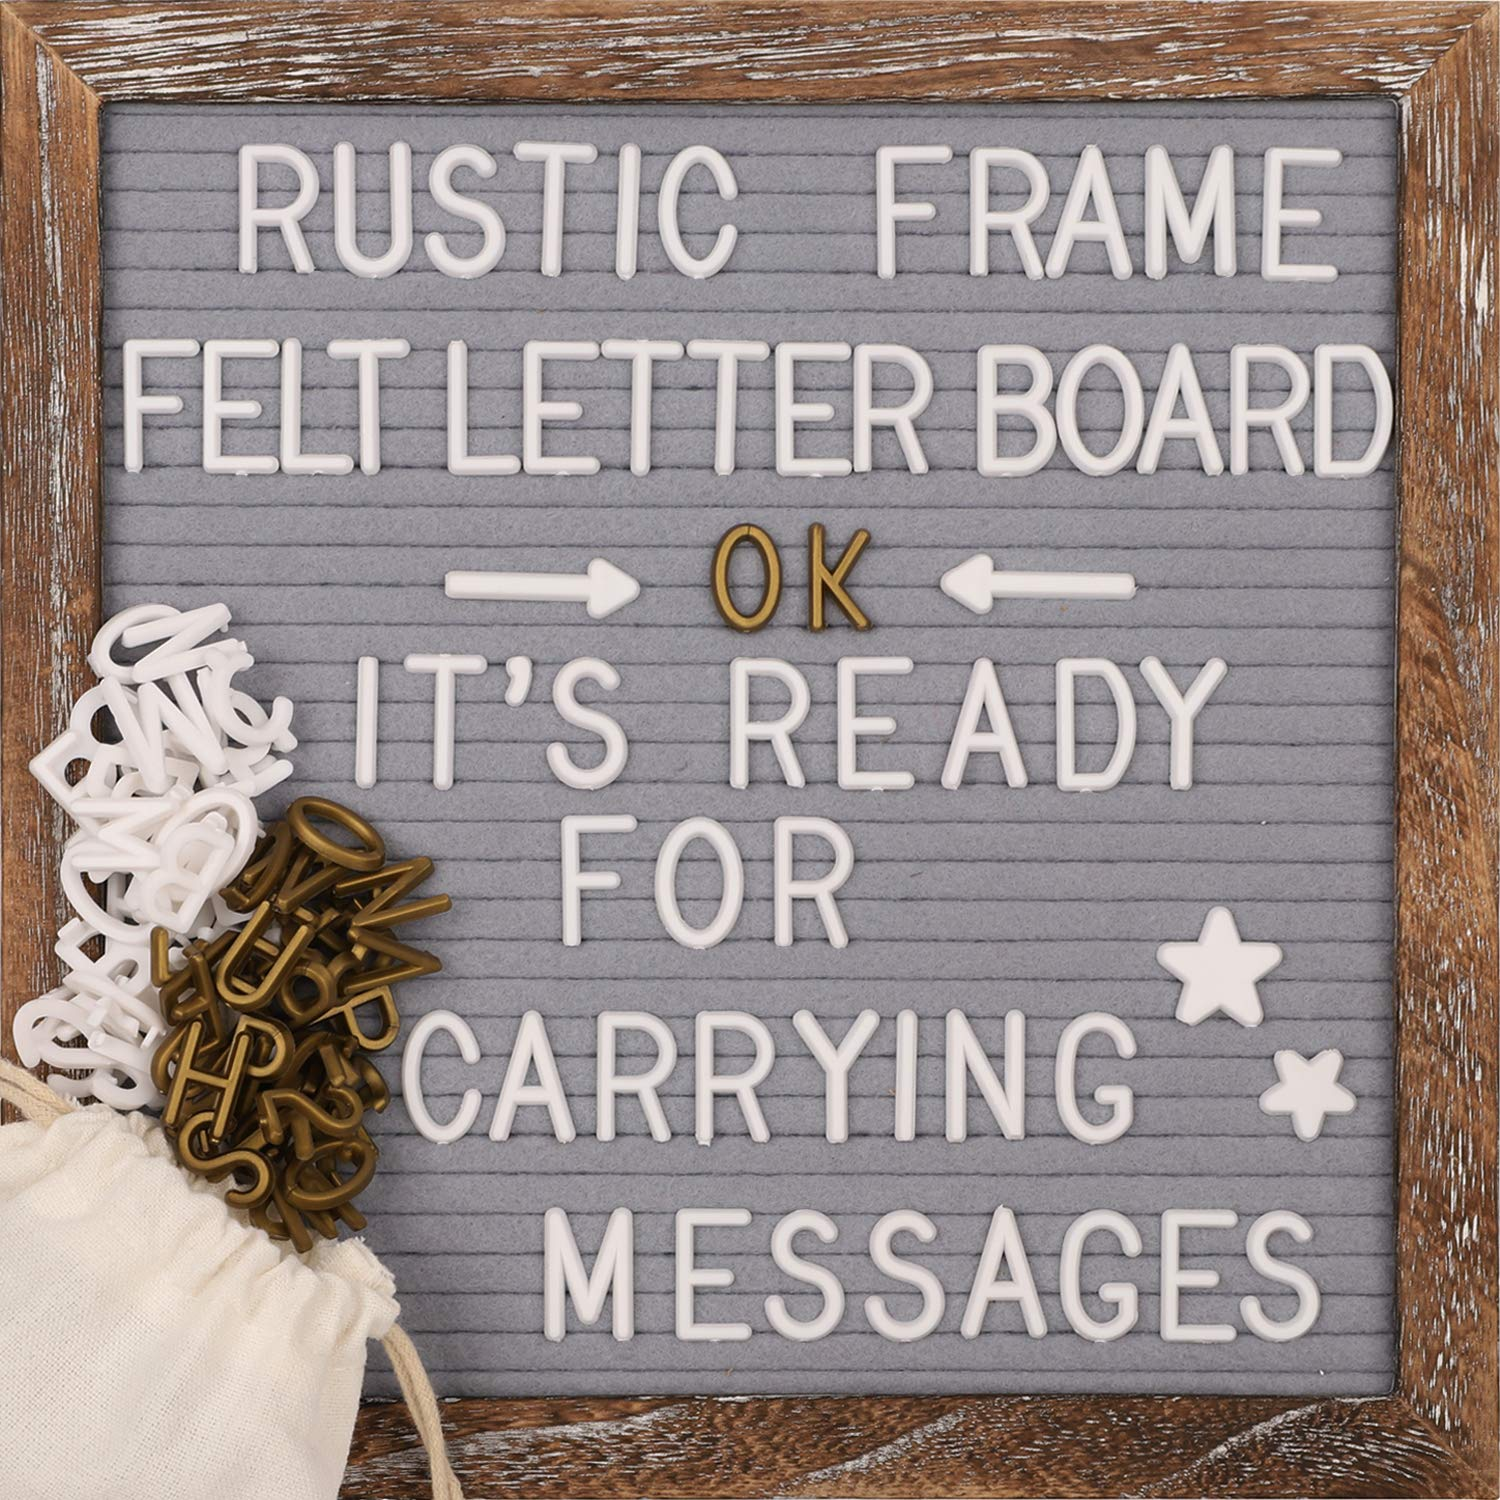 Awefrank Felt Letter Board 10x10 Inches Buy Online In Costa Rica At Desertcart